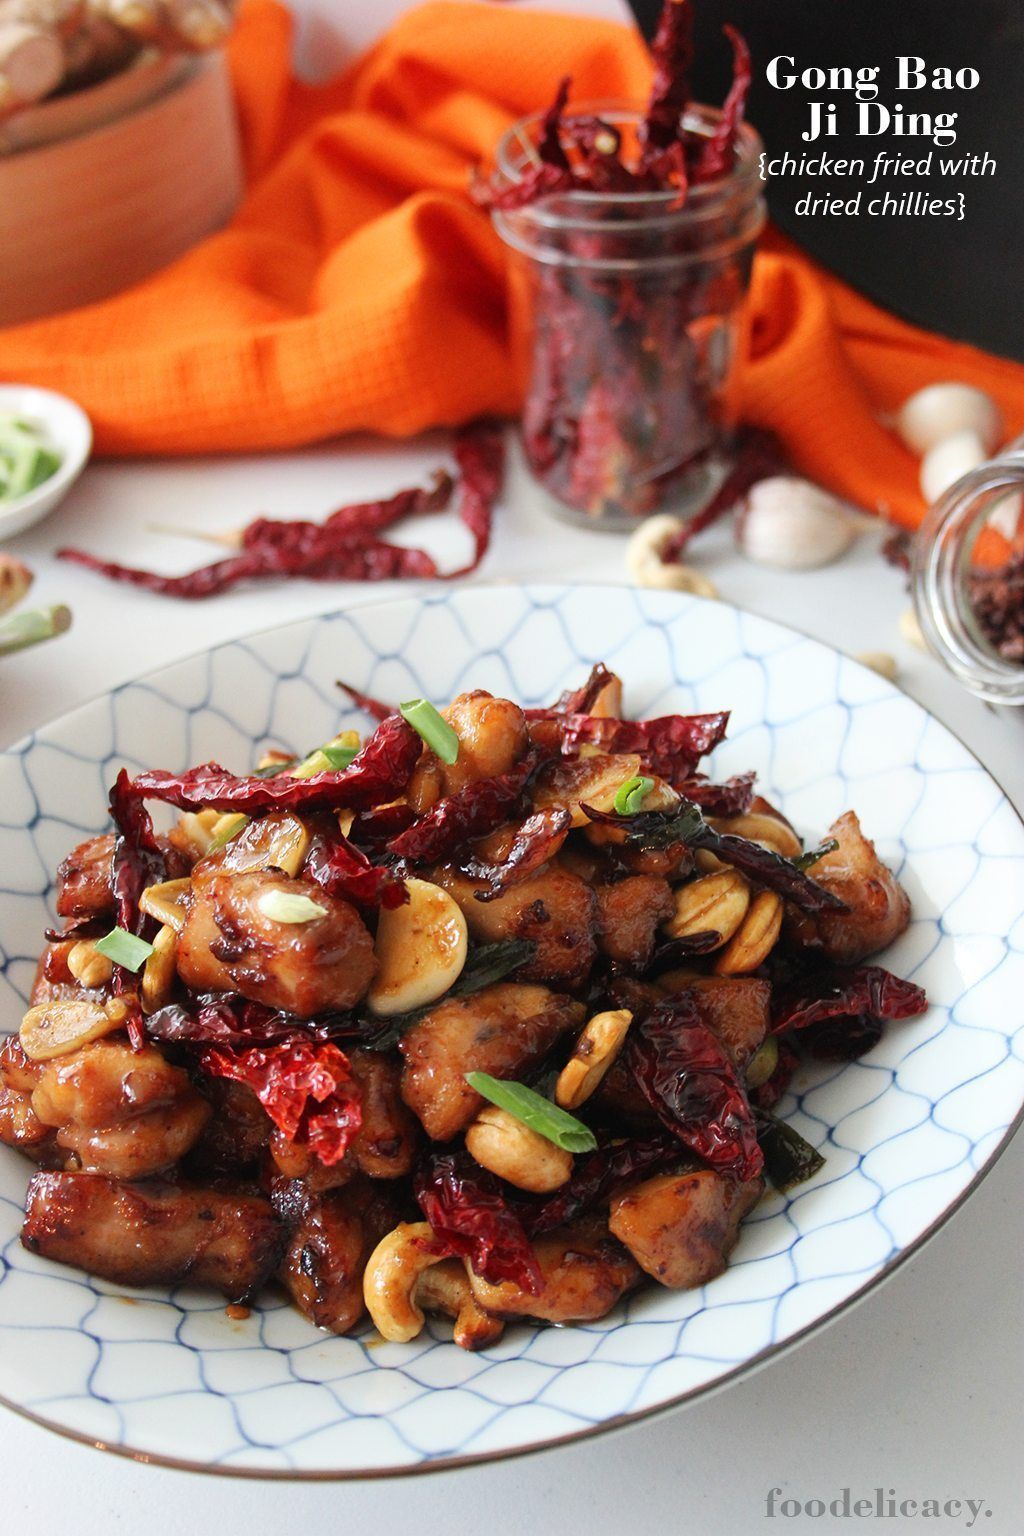 Gong Bao chicken (Chicken Fried with Dried Chillie